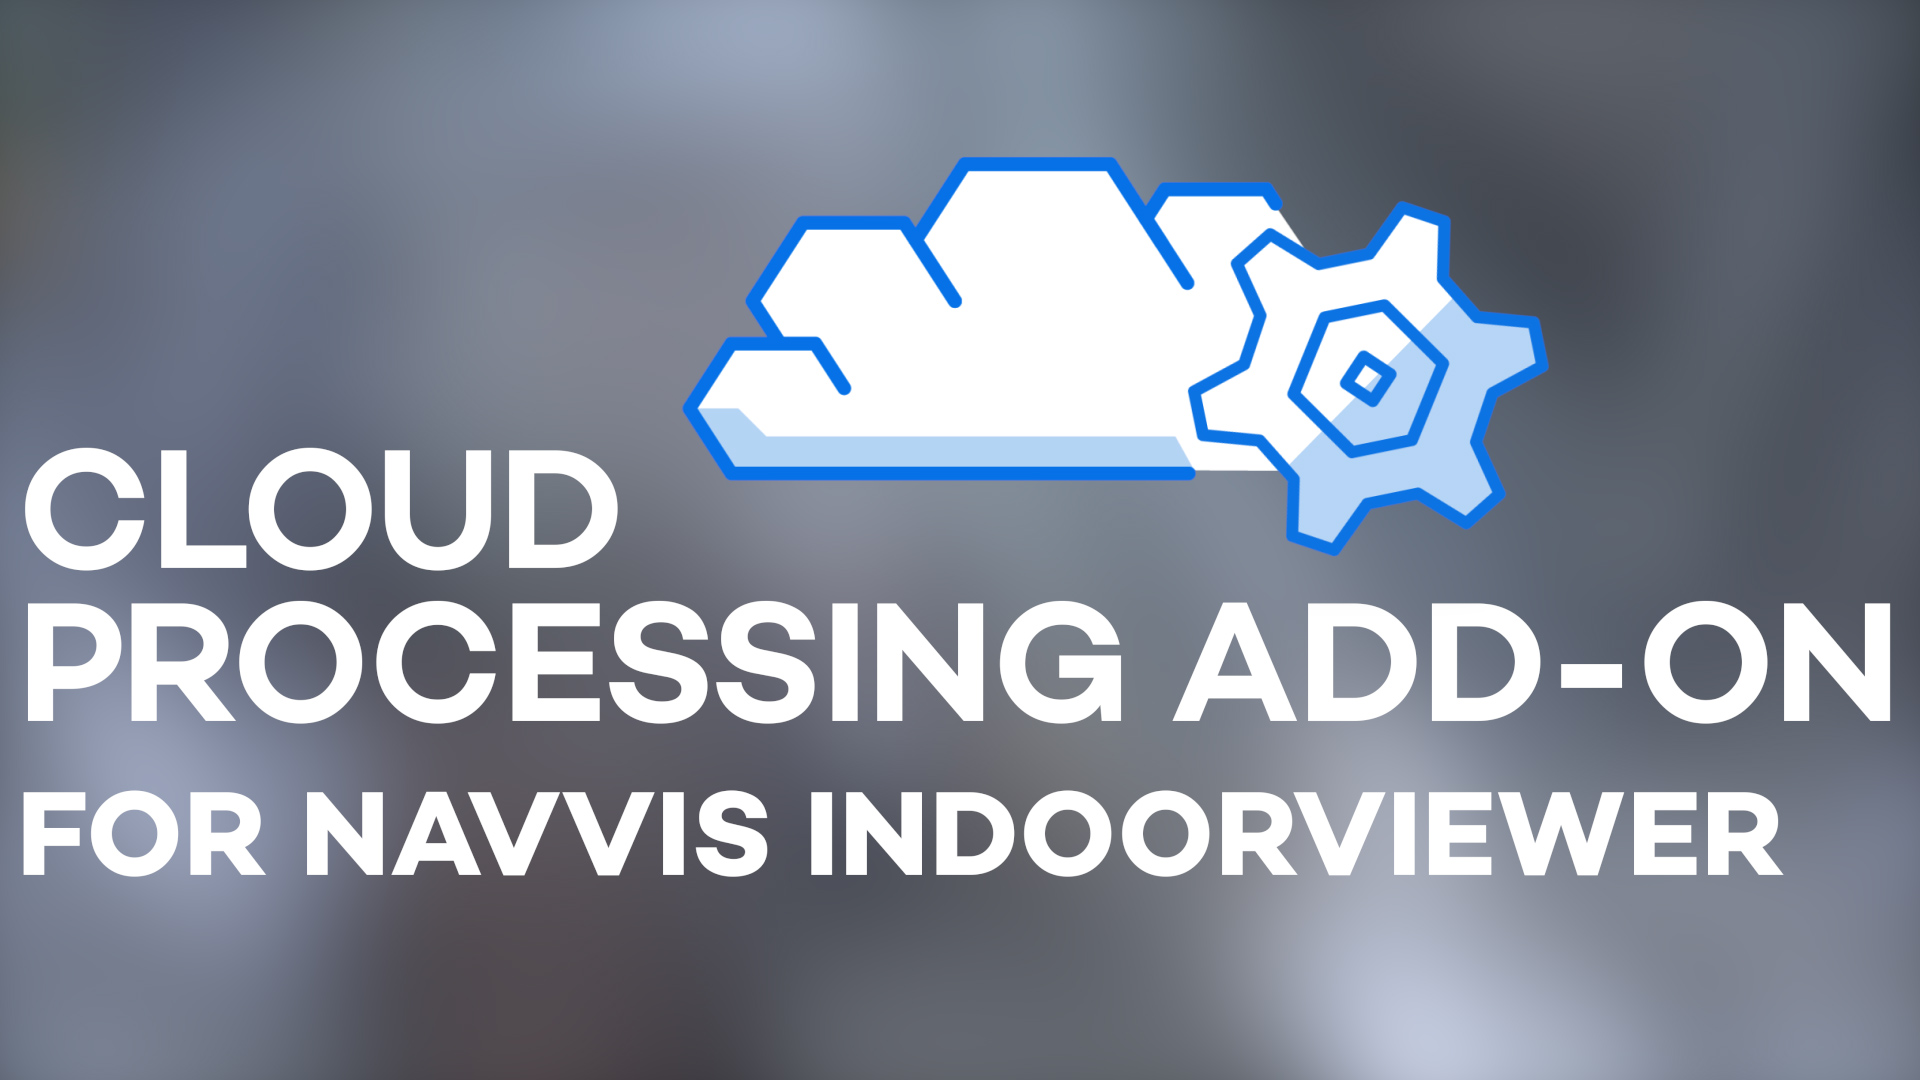 NavVis introduces processing in the cloud for even faster laser scanning workflows